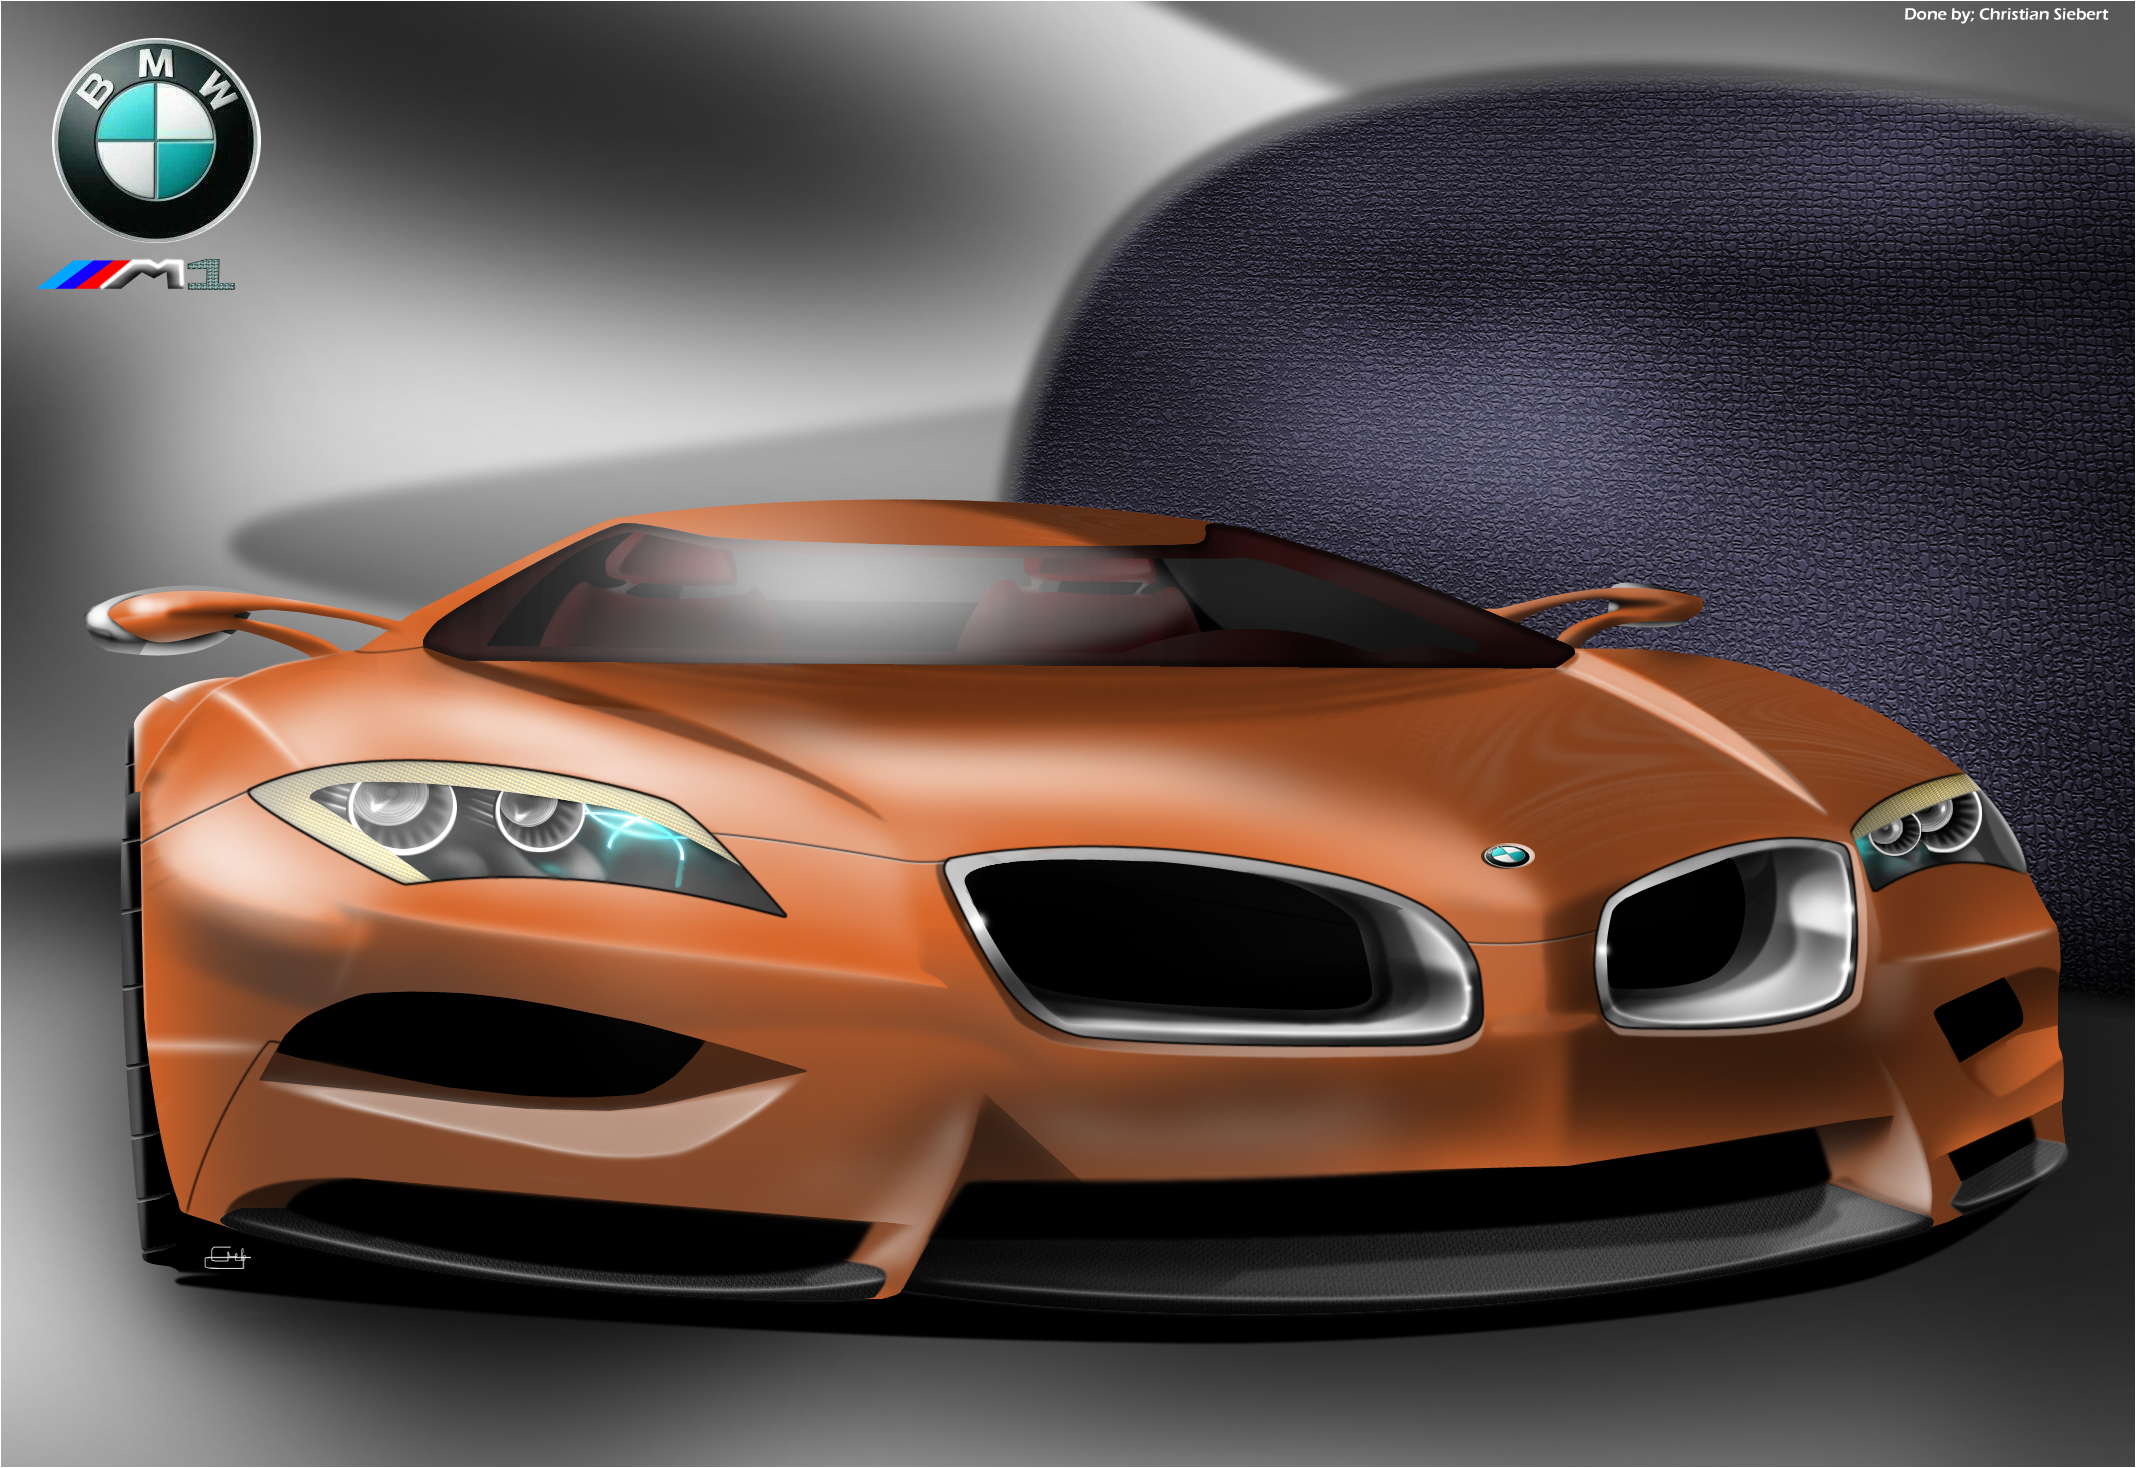 BMW M1 concept by trebeisChrisH on DeviantArt